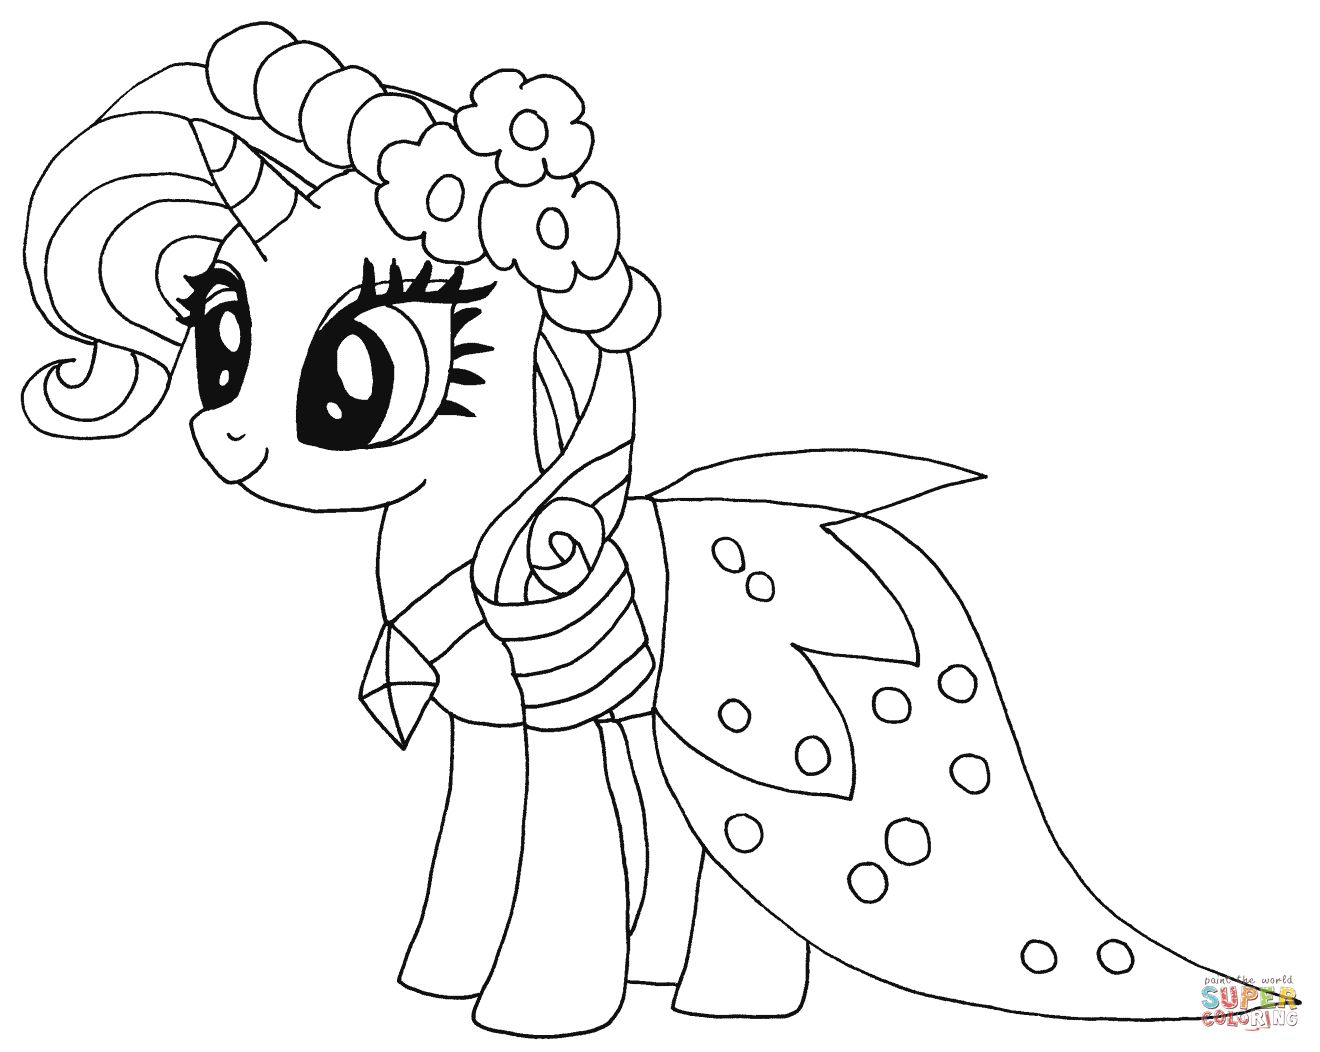 My Little Pony Coloring Pages My Little Pony Coloring Pages Free Coloring Pages Albanysinsanity Com My Little Pony Coloring Pages My Little Pony Coloring Coloring Pages Princess